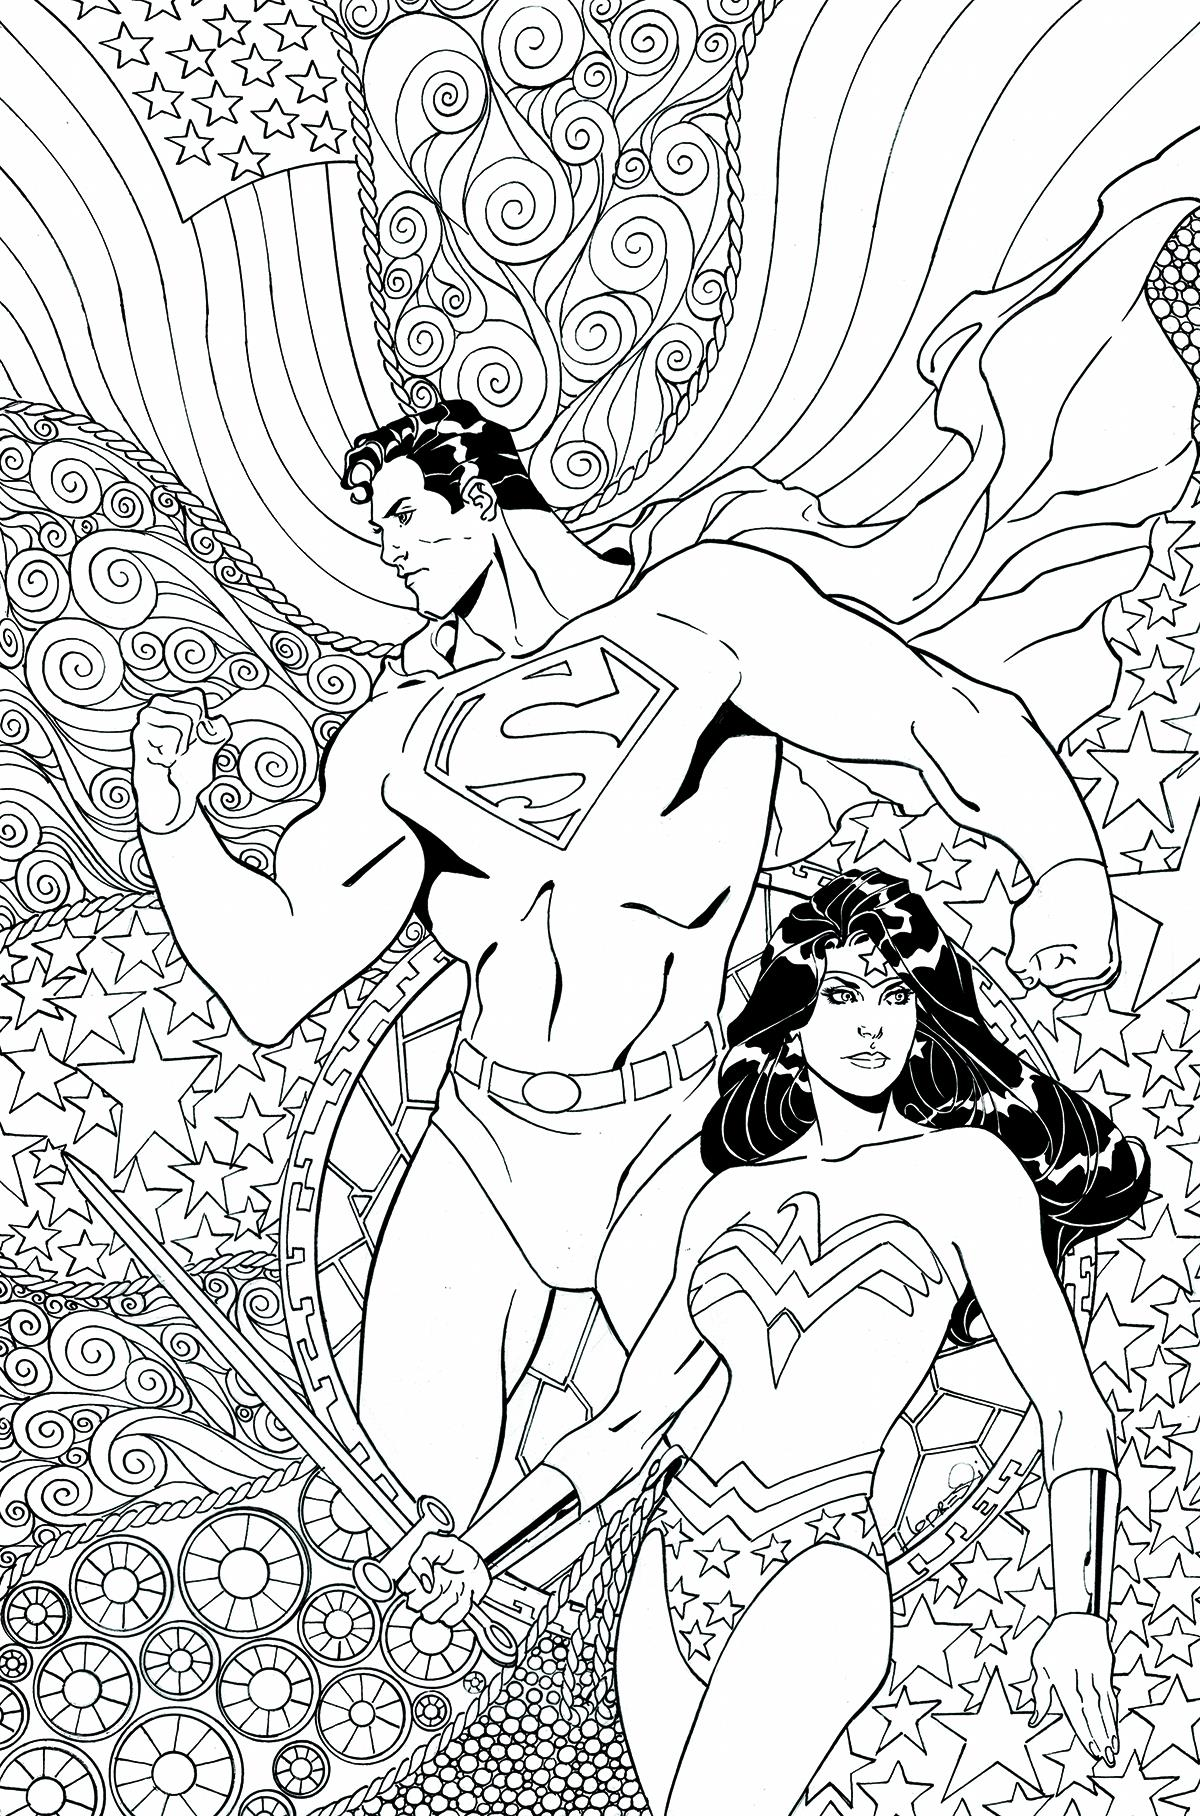 Superman Wonder Woman Vol 1 25 Textless Adult Coloring Book Variant.jpg